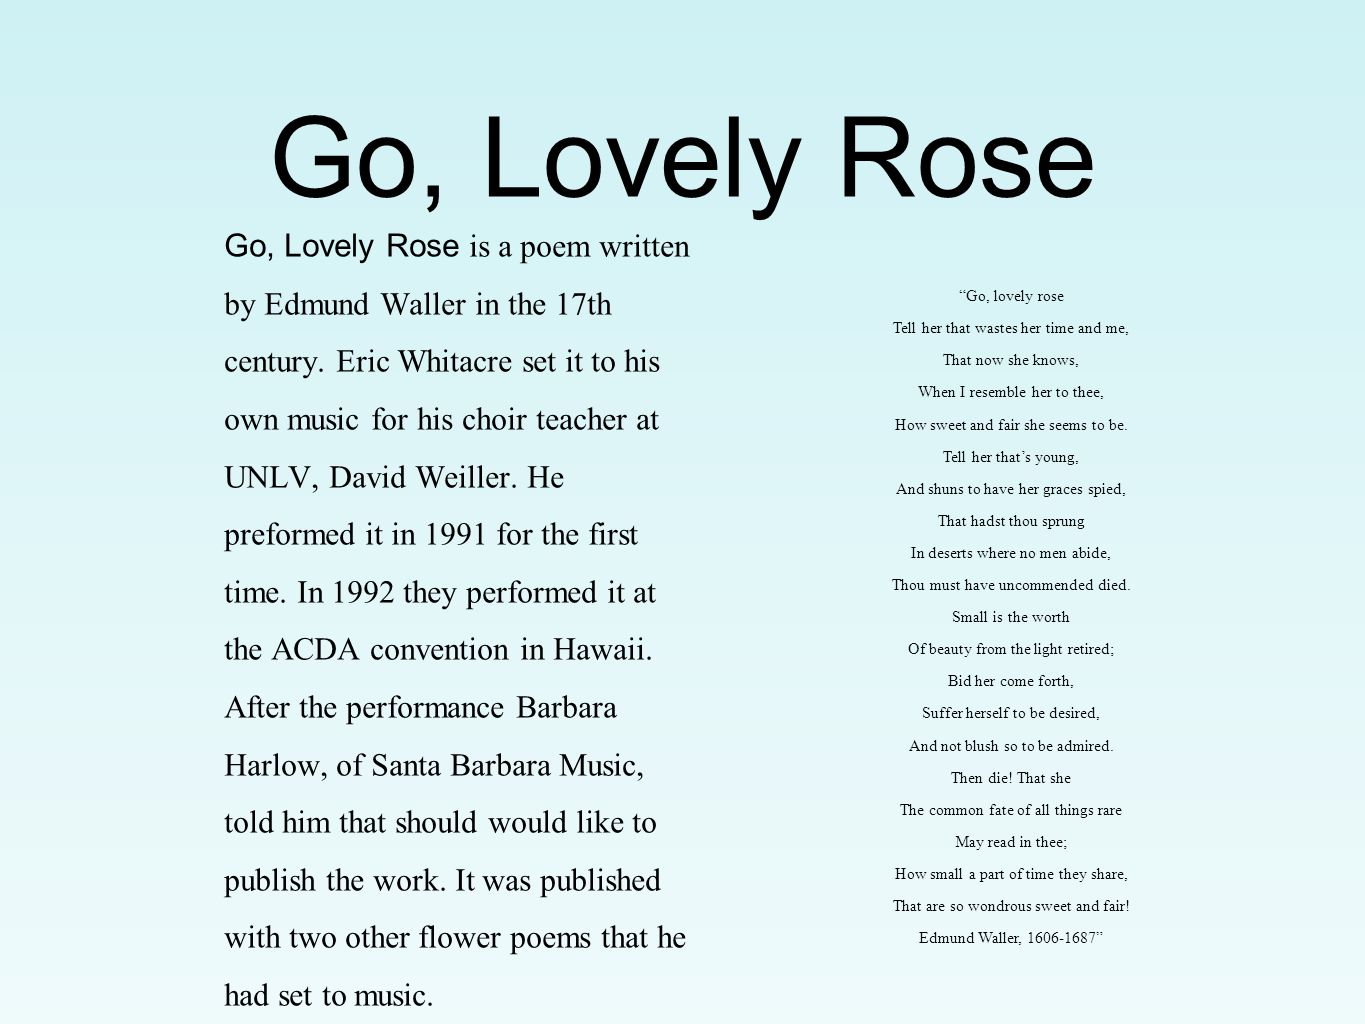 Go, Lovely Rose Go, Lovely Rose is a poem written by Edmund Waller in the 17th century. Eric Whitacre set it to his own music for his choir teacher at